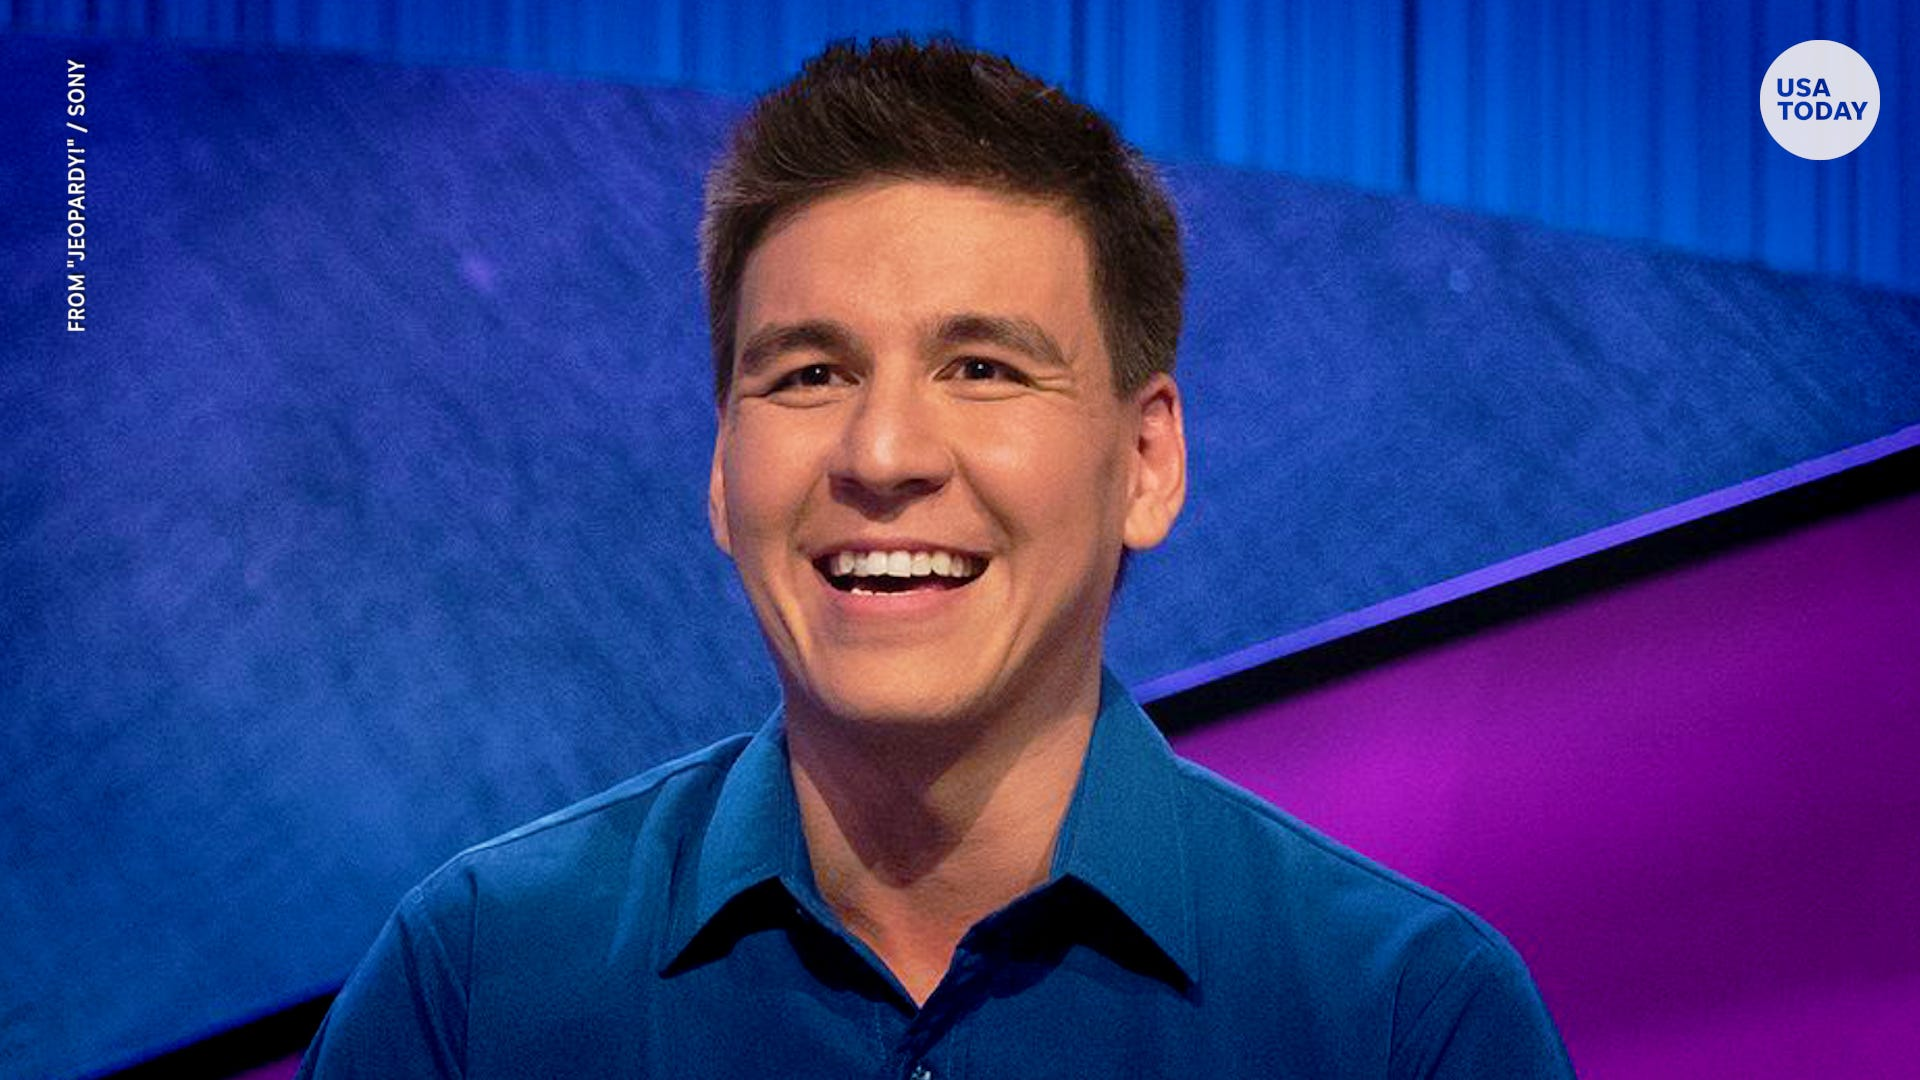 5 clues into 'Jeopardy!' champ James Holzhauer's brain